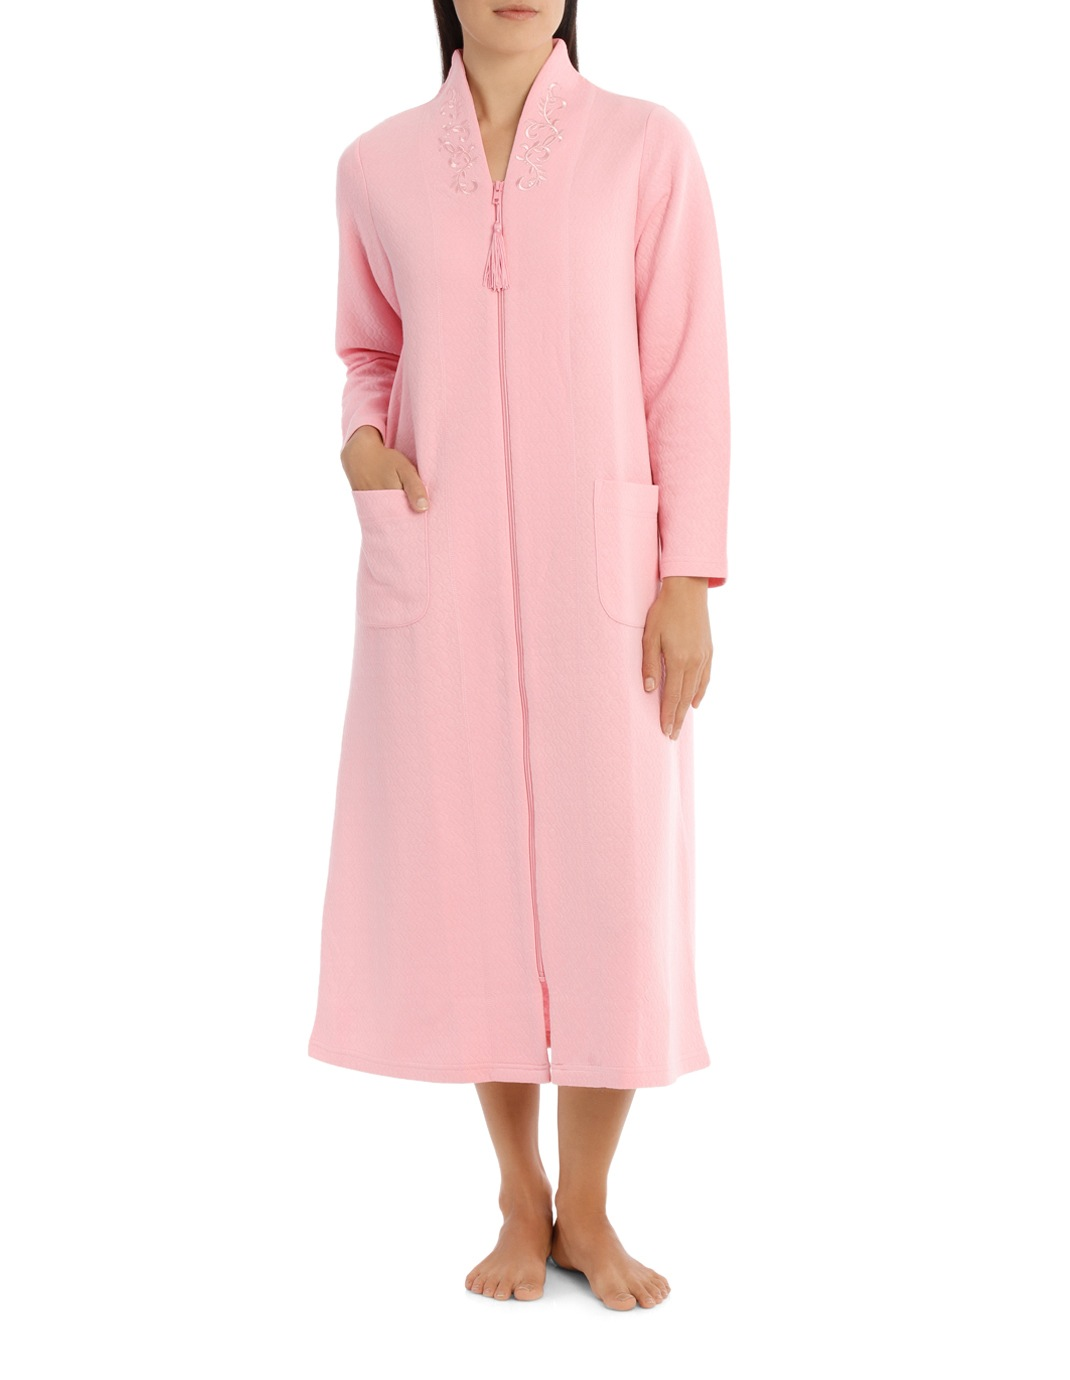 Givoni | \'Jacquard Double Knit\' Geo Diamond Midlength Zip Gown 7SQ70 ...